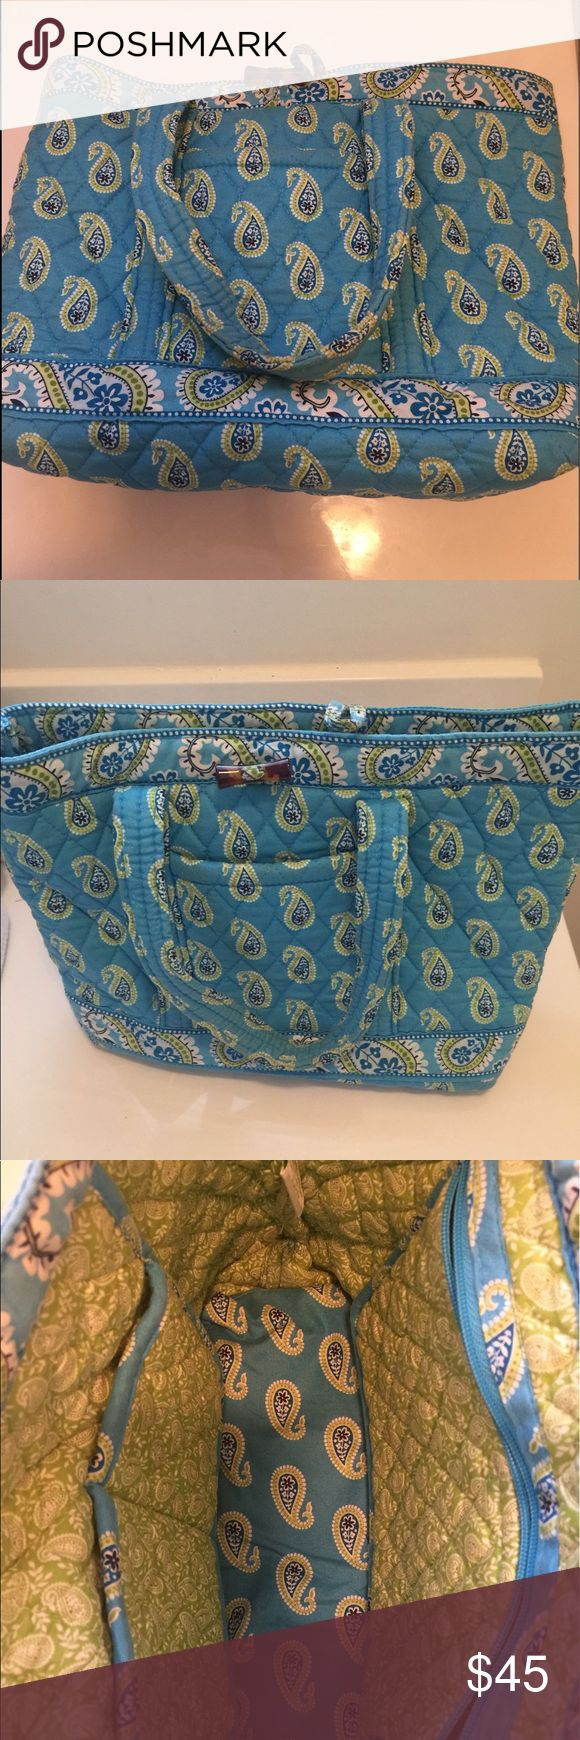 Bermuda blue Vera Bradley tote New low price only for the next hour. Open to offers!!! Blue and green spacious Vera Bradley tote bag Vera Bradley Bags Totes